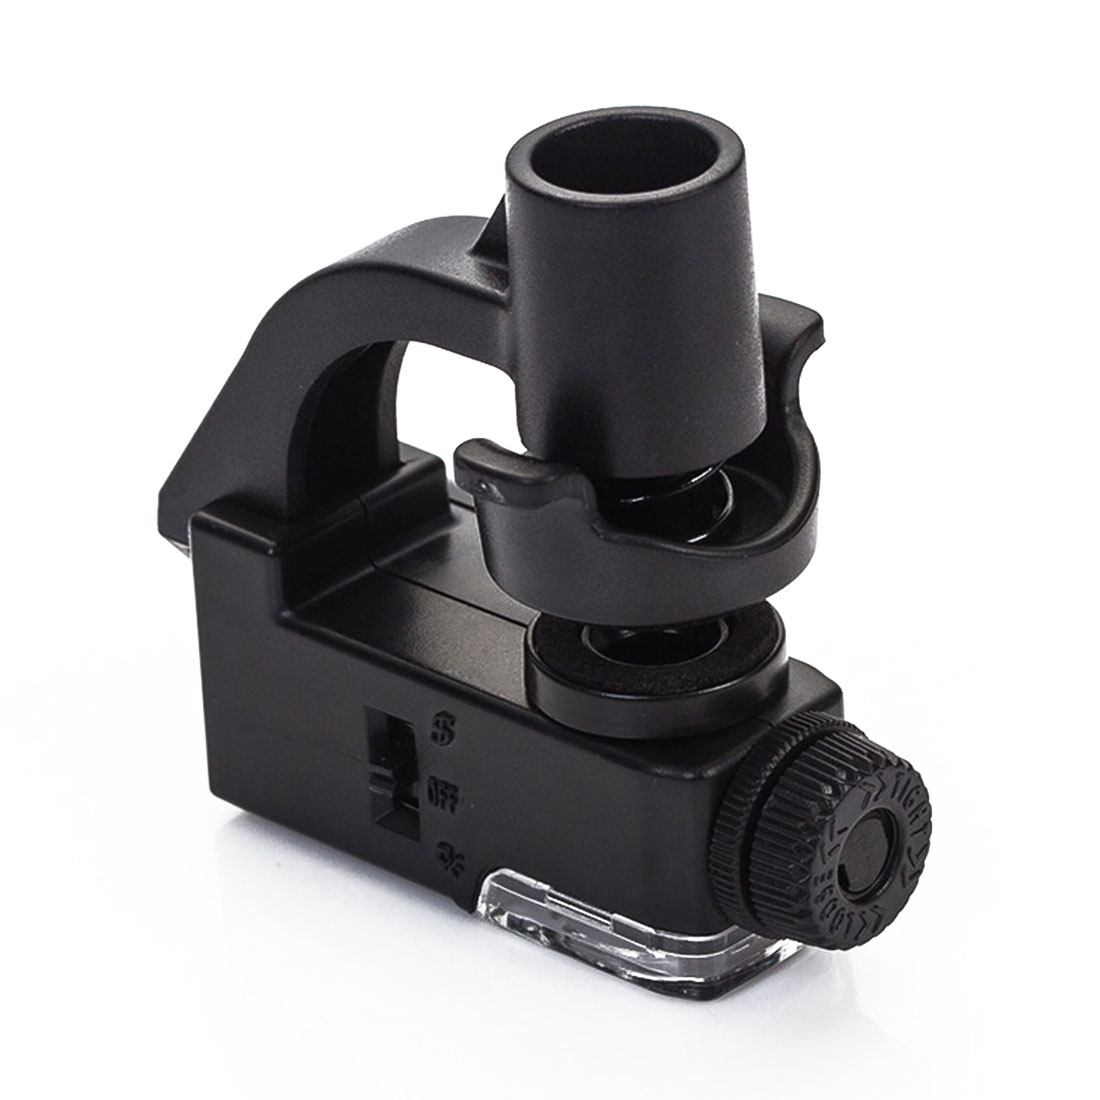 Macro Lens 90X Mobile Phone Microscope Magnifying Glass LED Tools Magnification With Micro Camera Clip Optical Zoom Magnifier